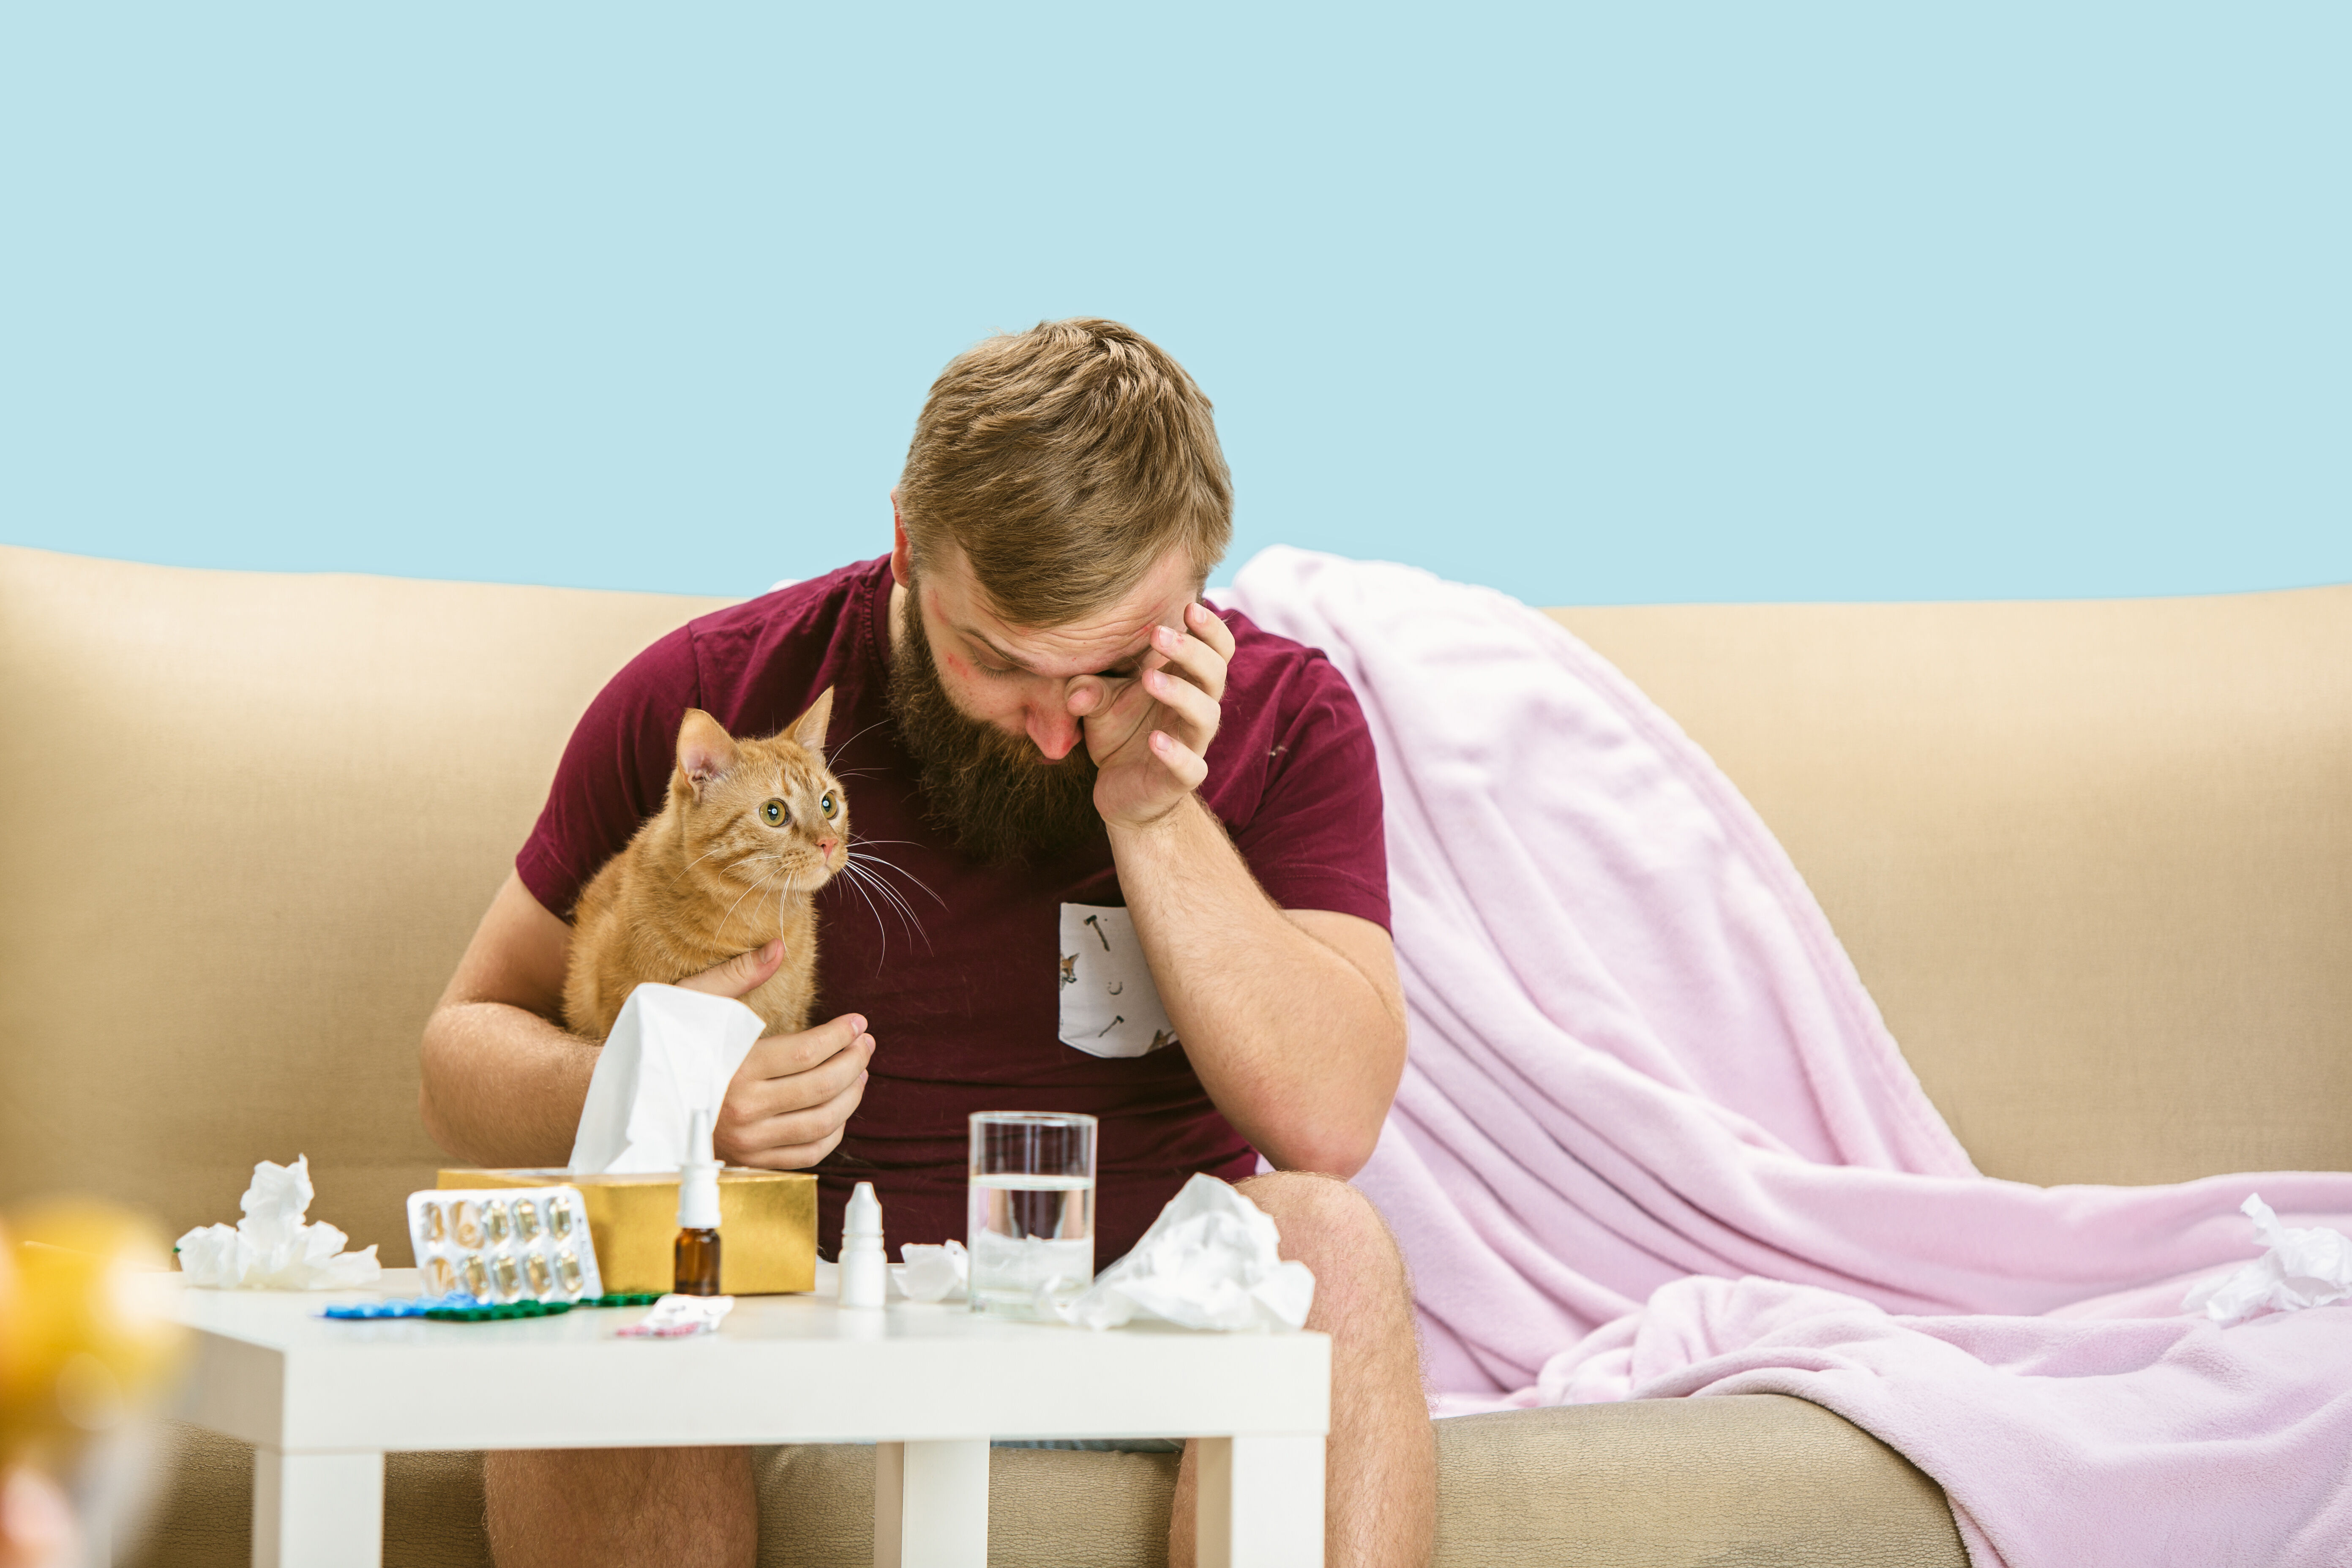 Allergic person with a cat and medications